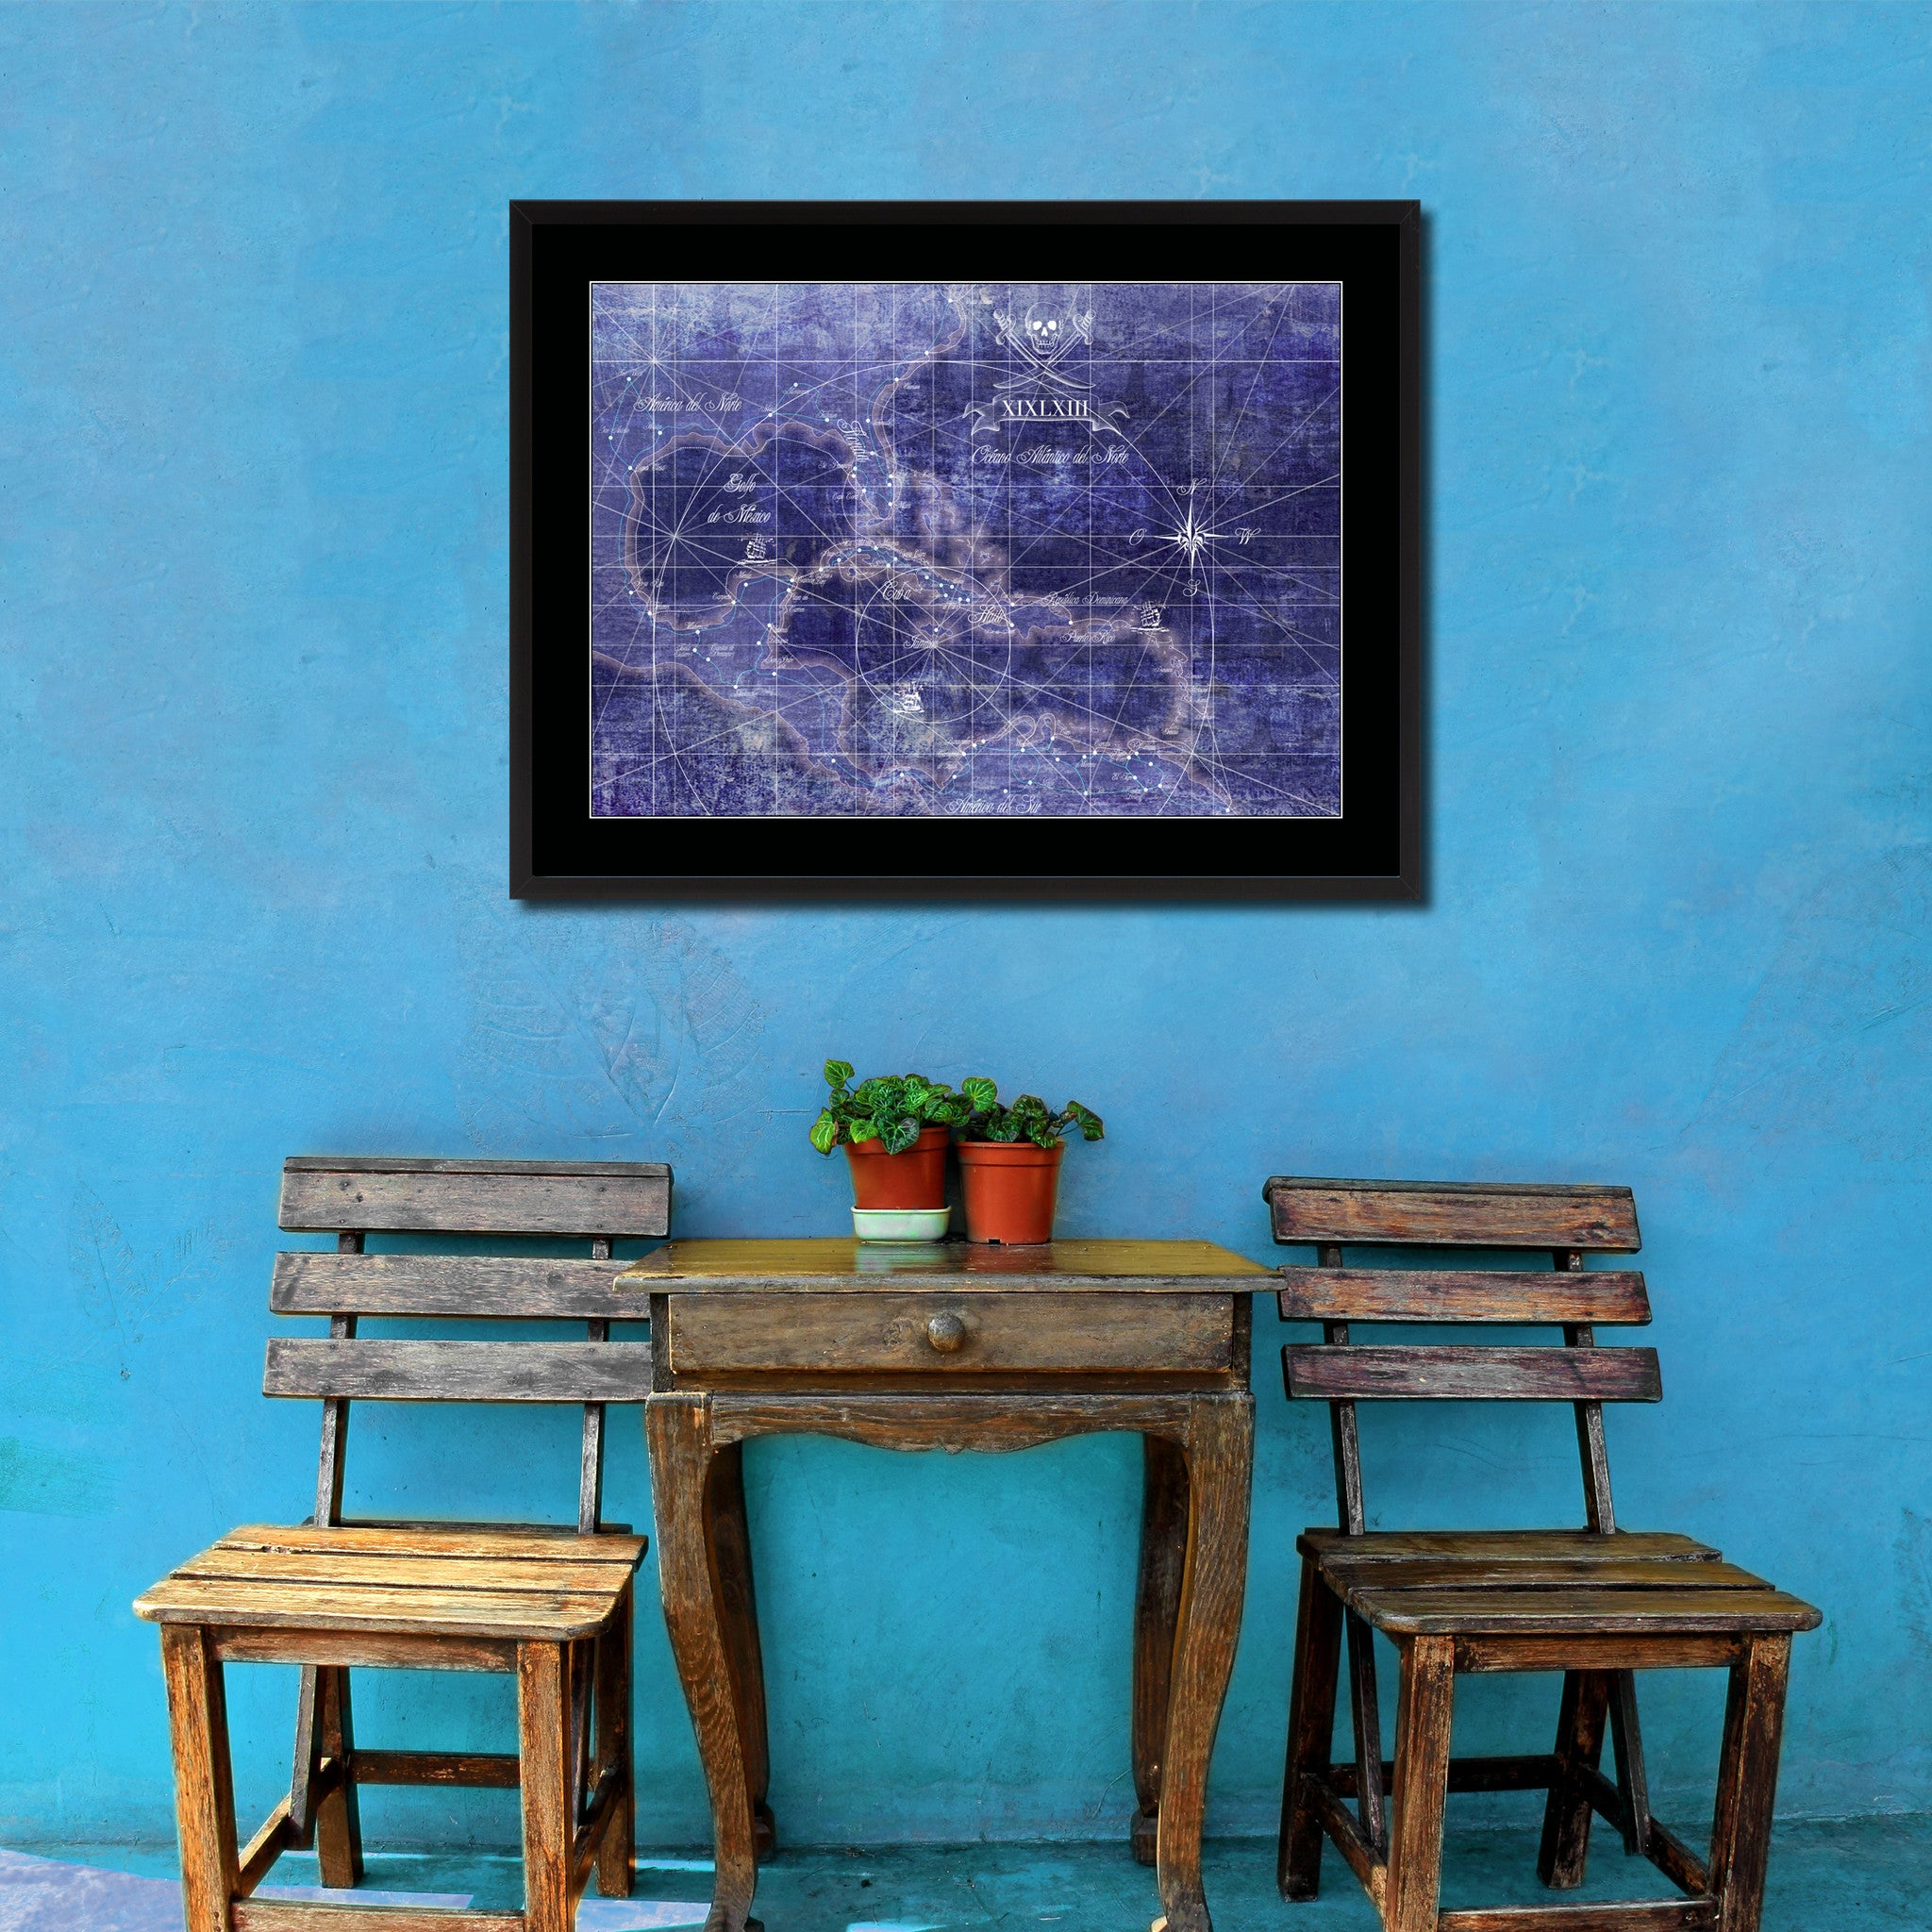 Caribbean Vintage Vivid Color Map Canvas Print, Picture Frame Home Decor Wall Art Office Decoration Gift Ideas